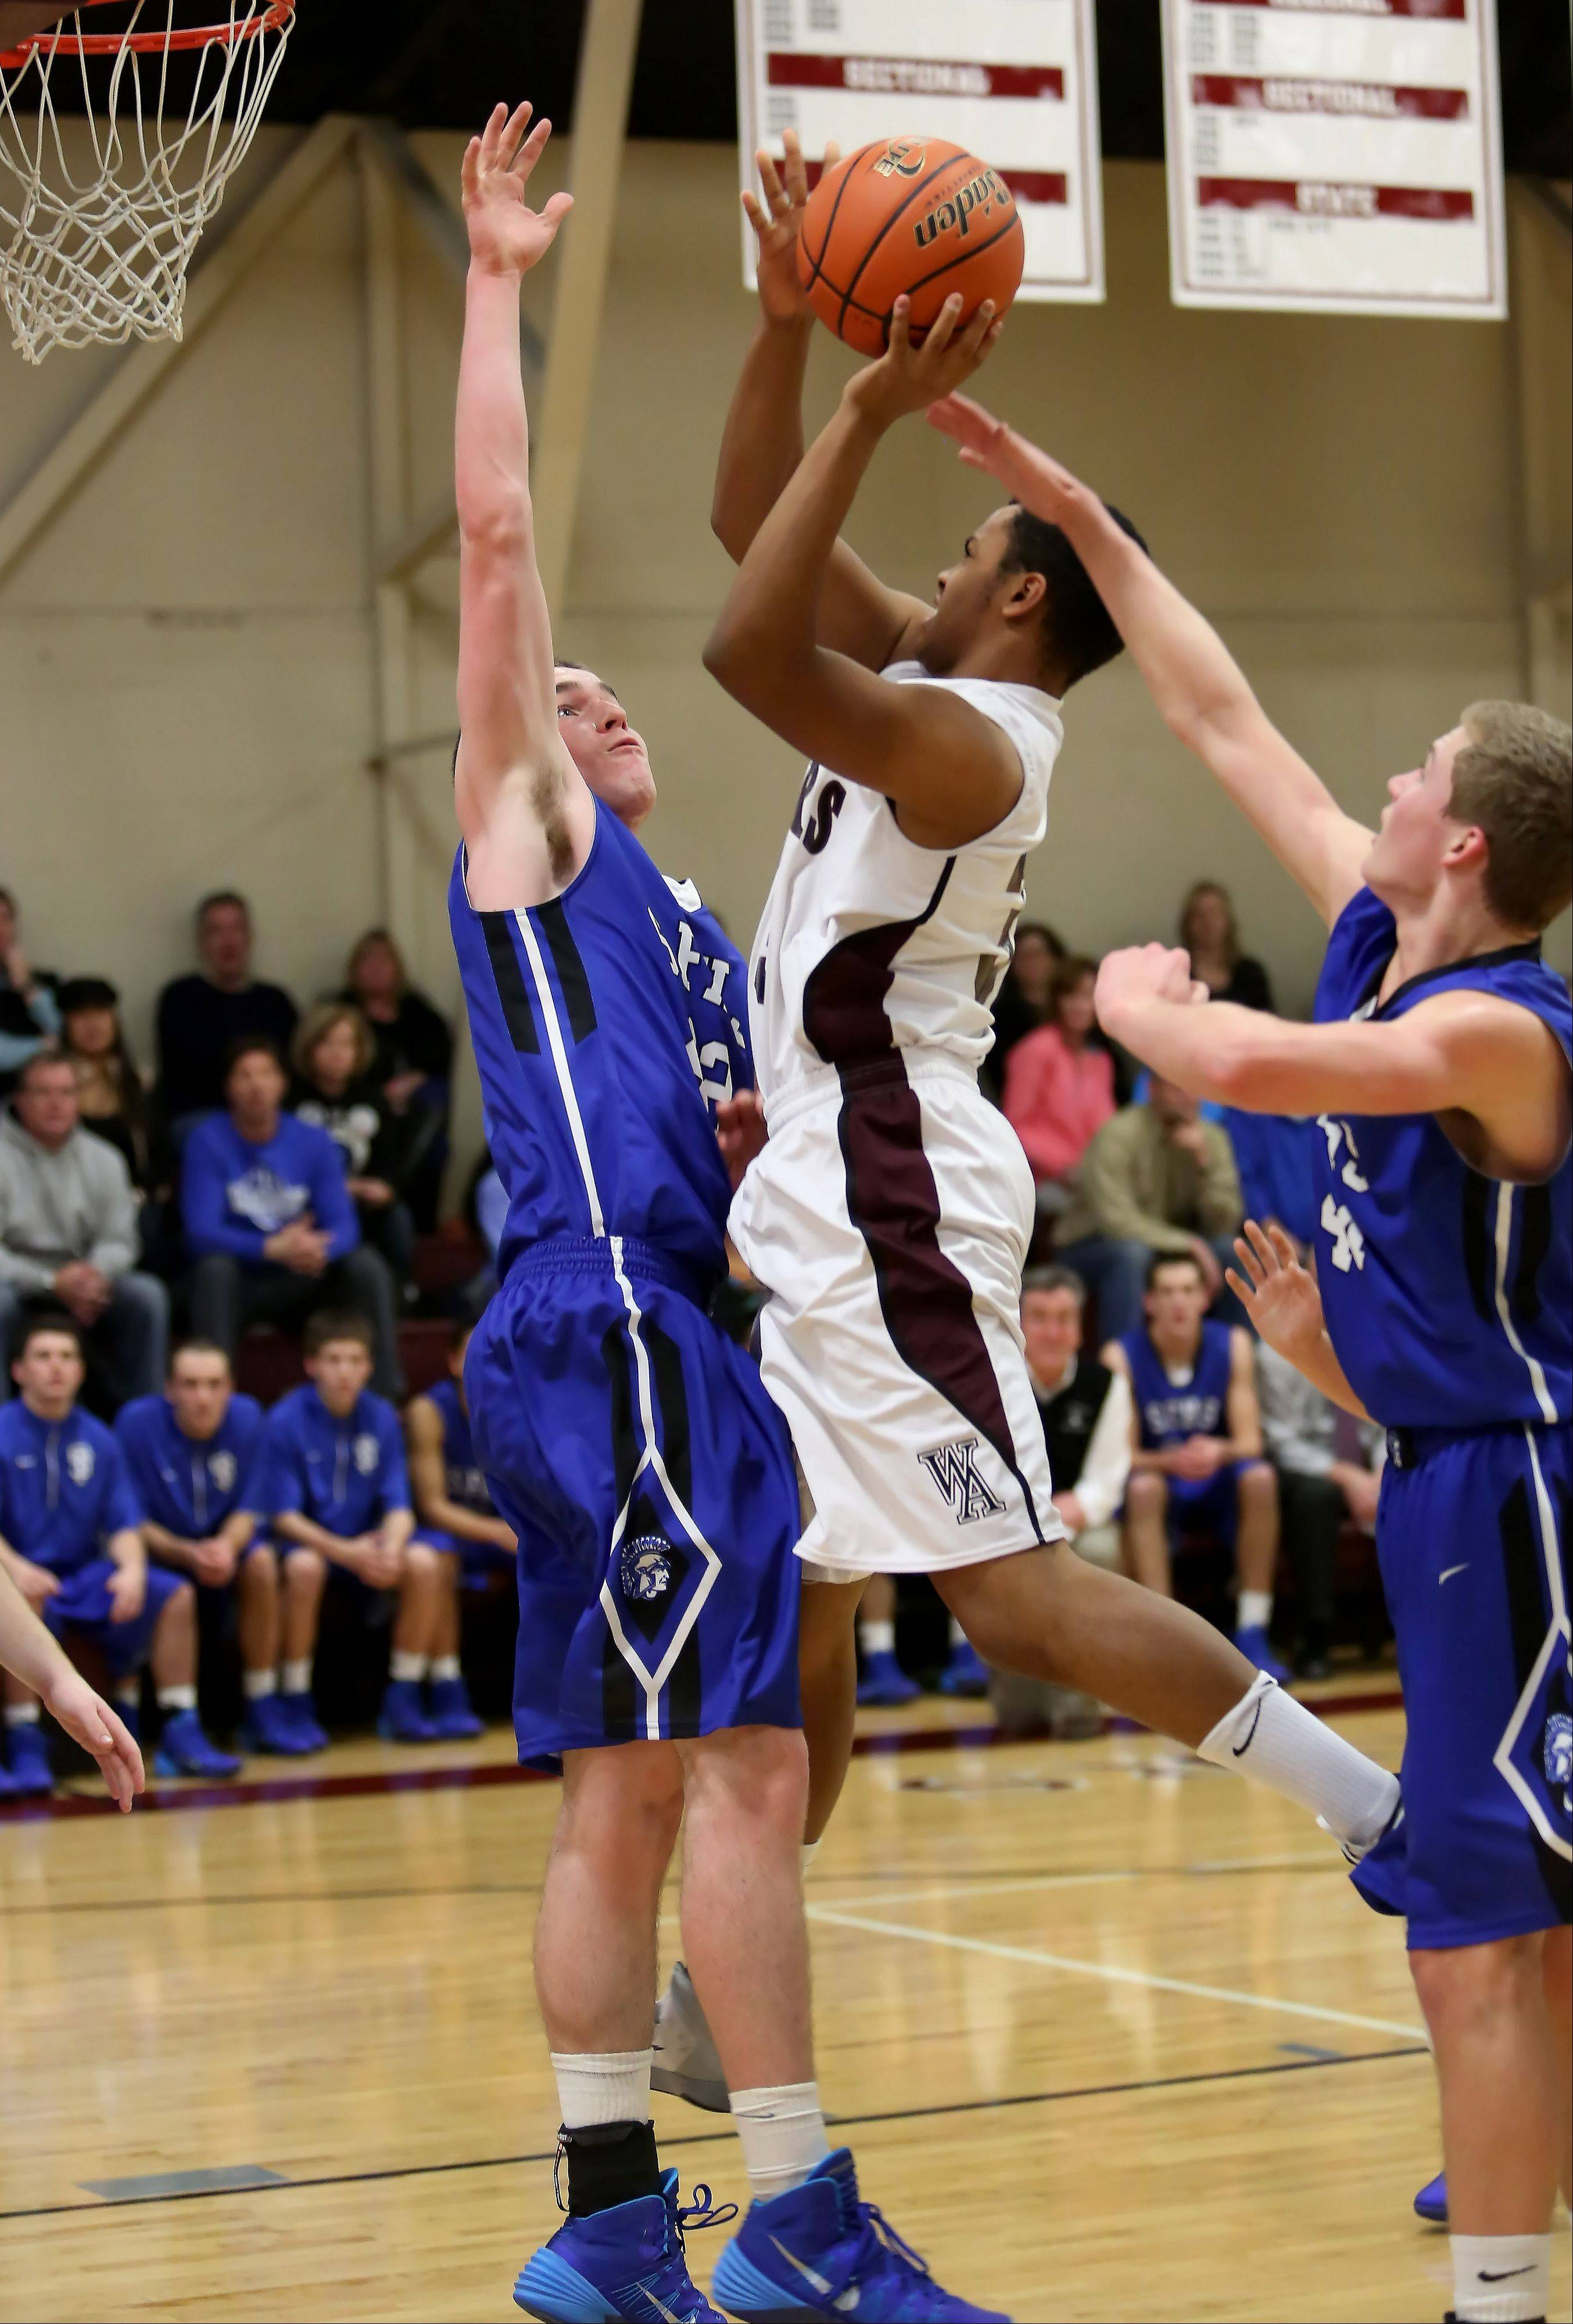 Wheaton Academy's Evan Williams, center, goes up for a basket as Kilian Brown of St. Francis defends, left, during boys basketball in West Chicago on Tuesday.